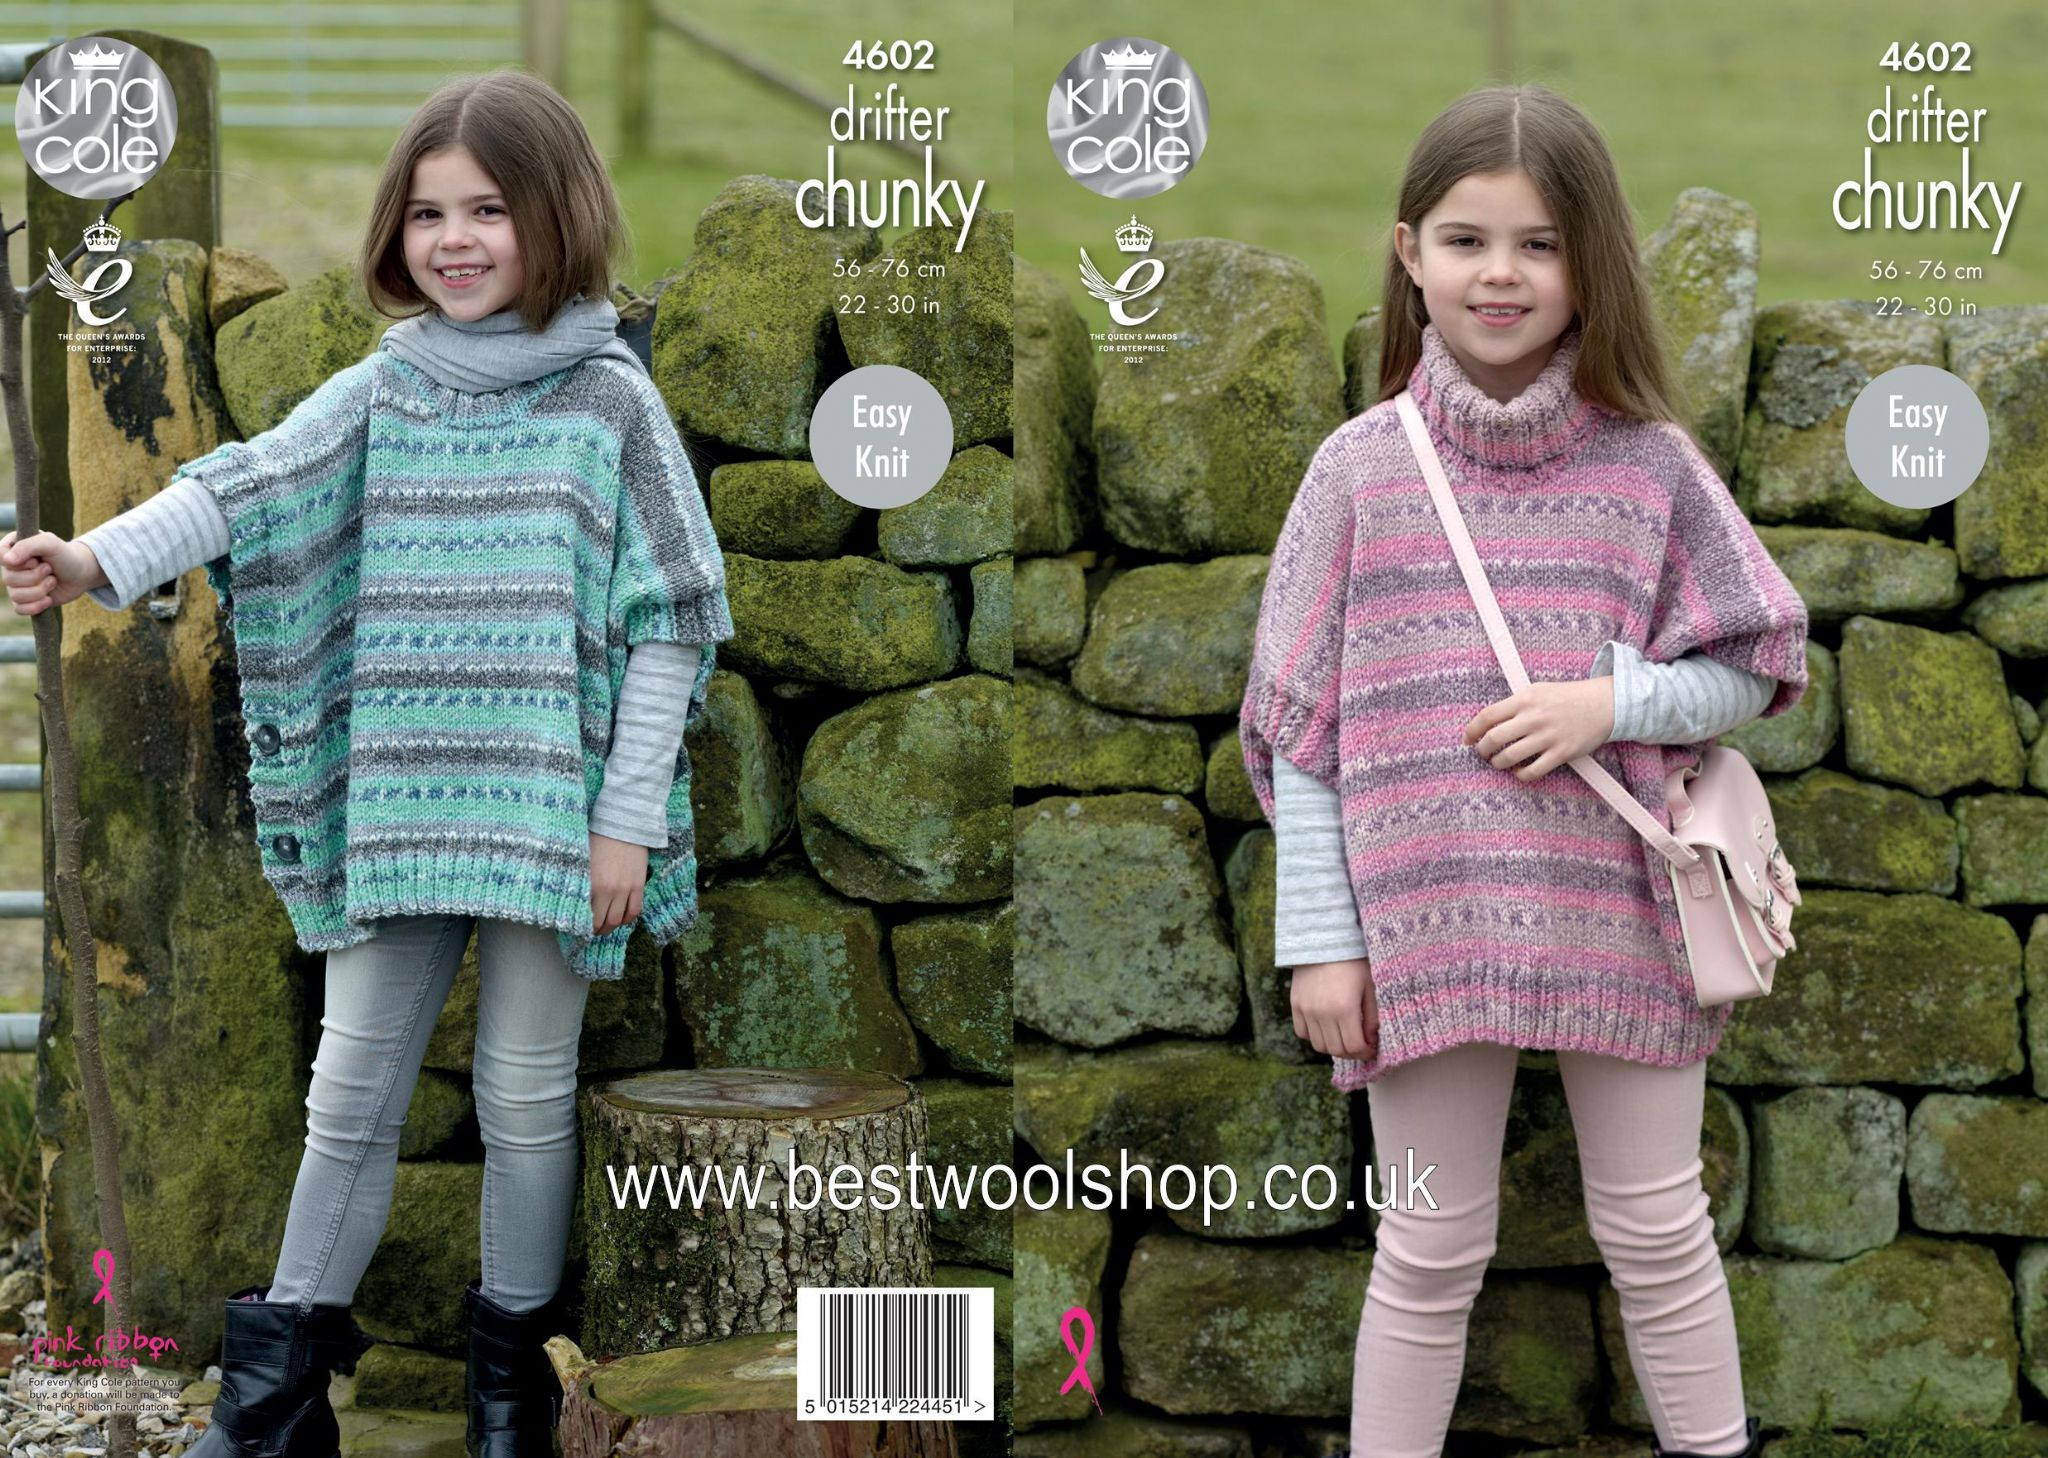 Poncho Knitting Pattern Chunky 4602 King Cole Drifter Chunky Easy Knit Polo Round Neck Poncho Knitting Pattern To Fit Age 2 To 12 Years